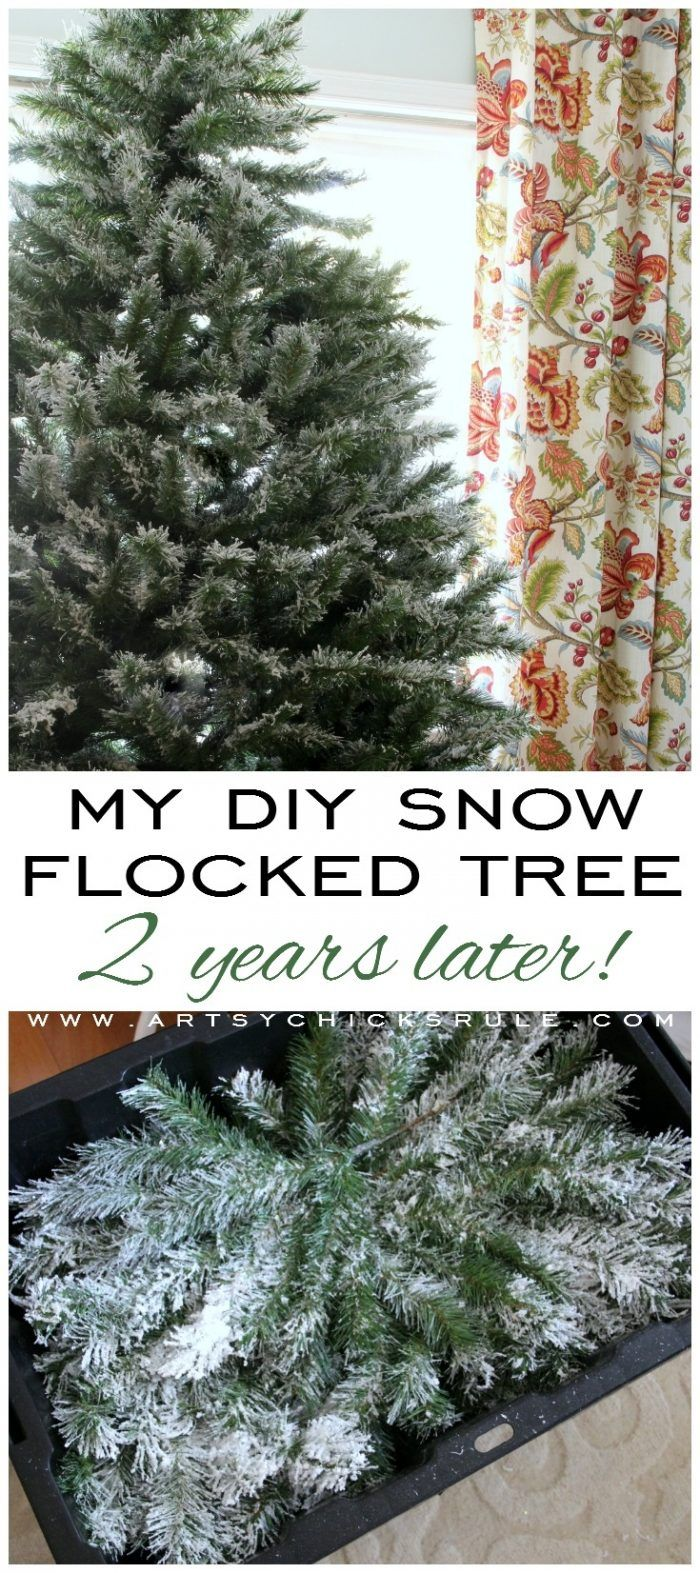 My DIY Snow Flocked Tree 2 Years Later (all the details